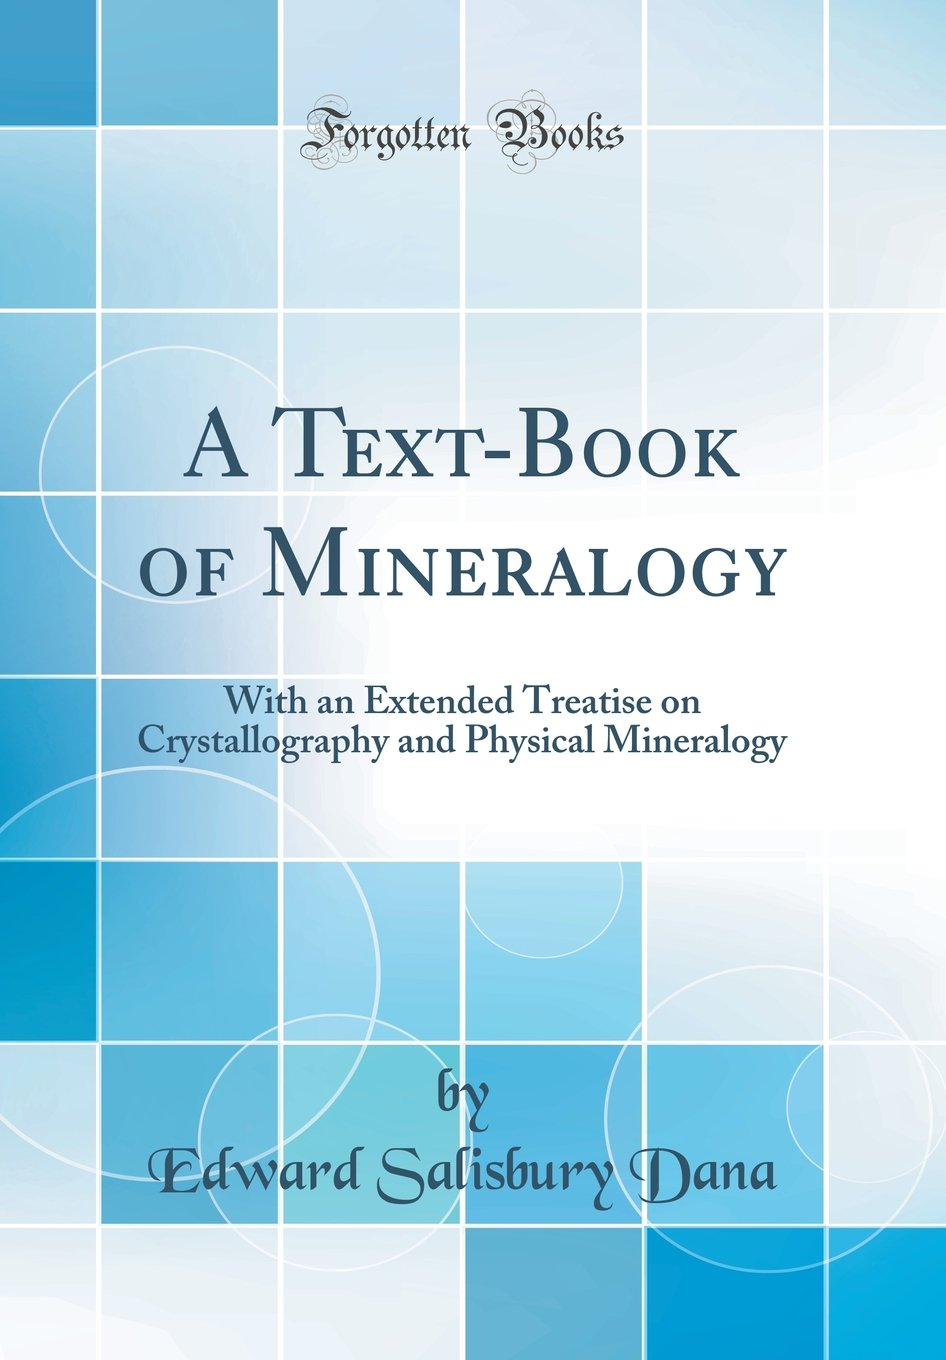 Download A Text-Book of Mineralogy: With an Extended Treatise on Crystallography and Physical Mineralogy (Classic Reprint) pdf